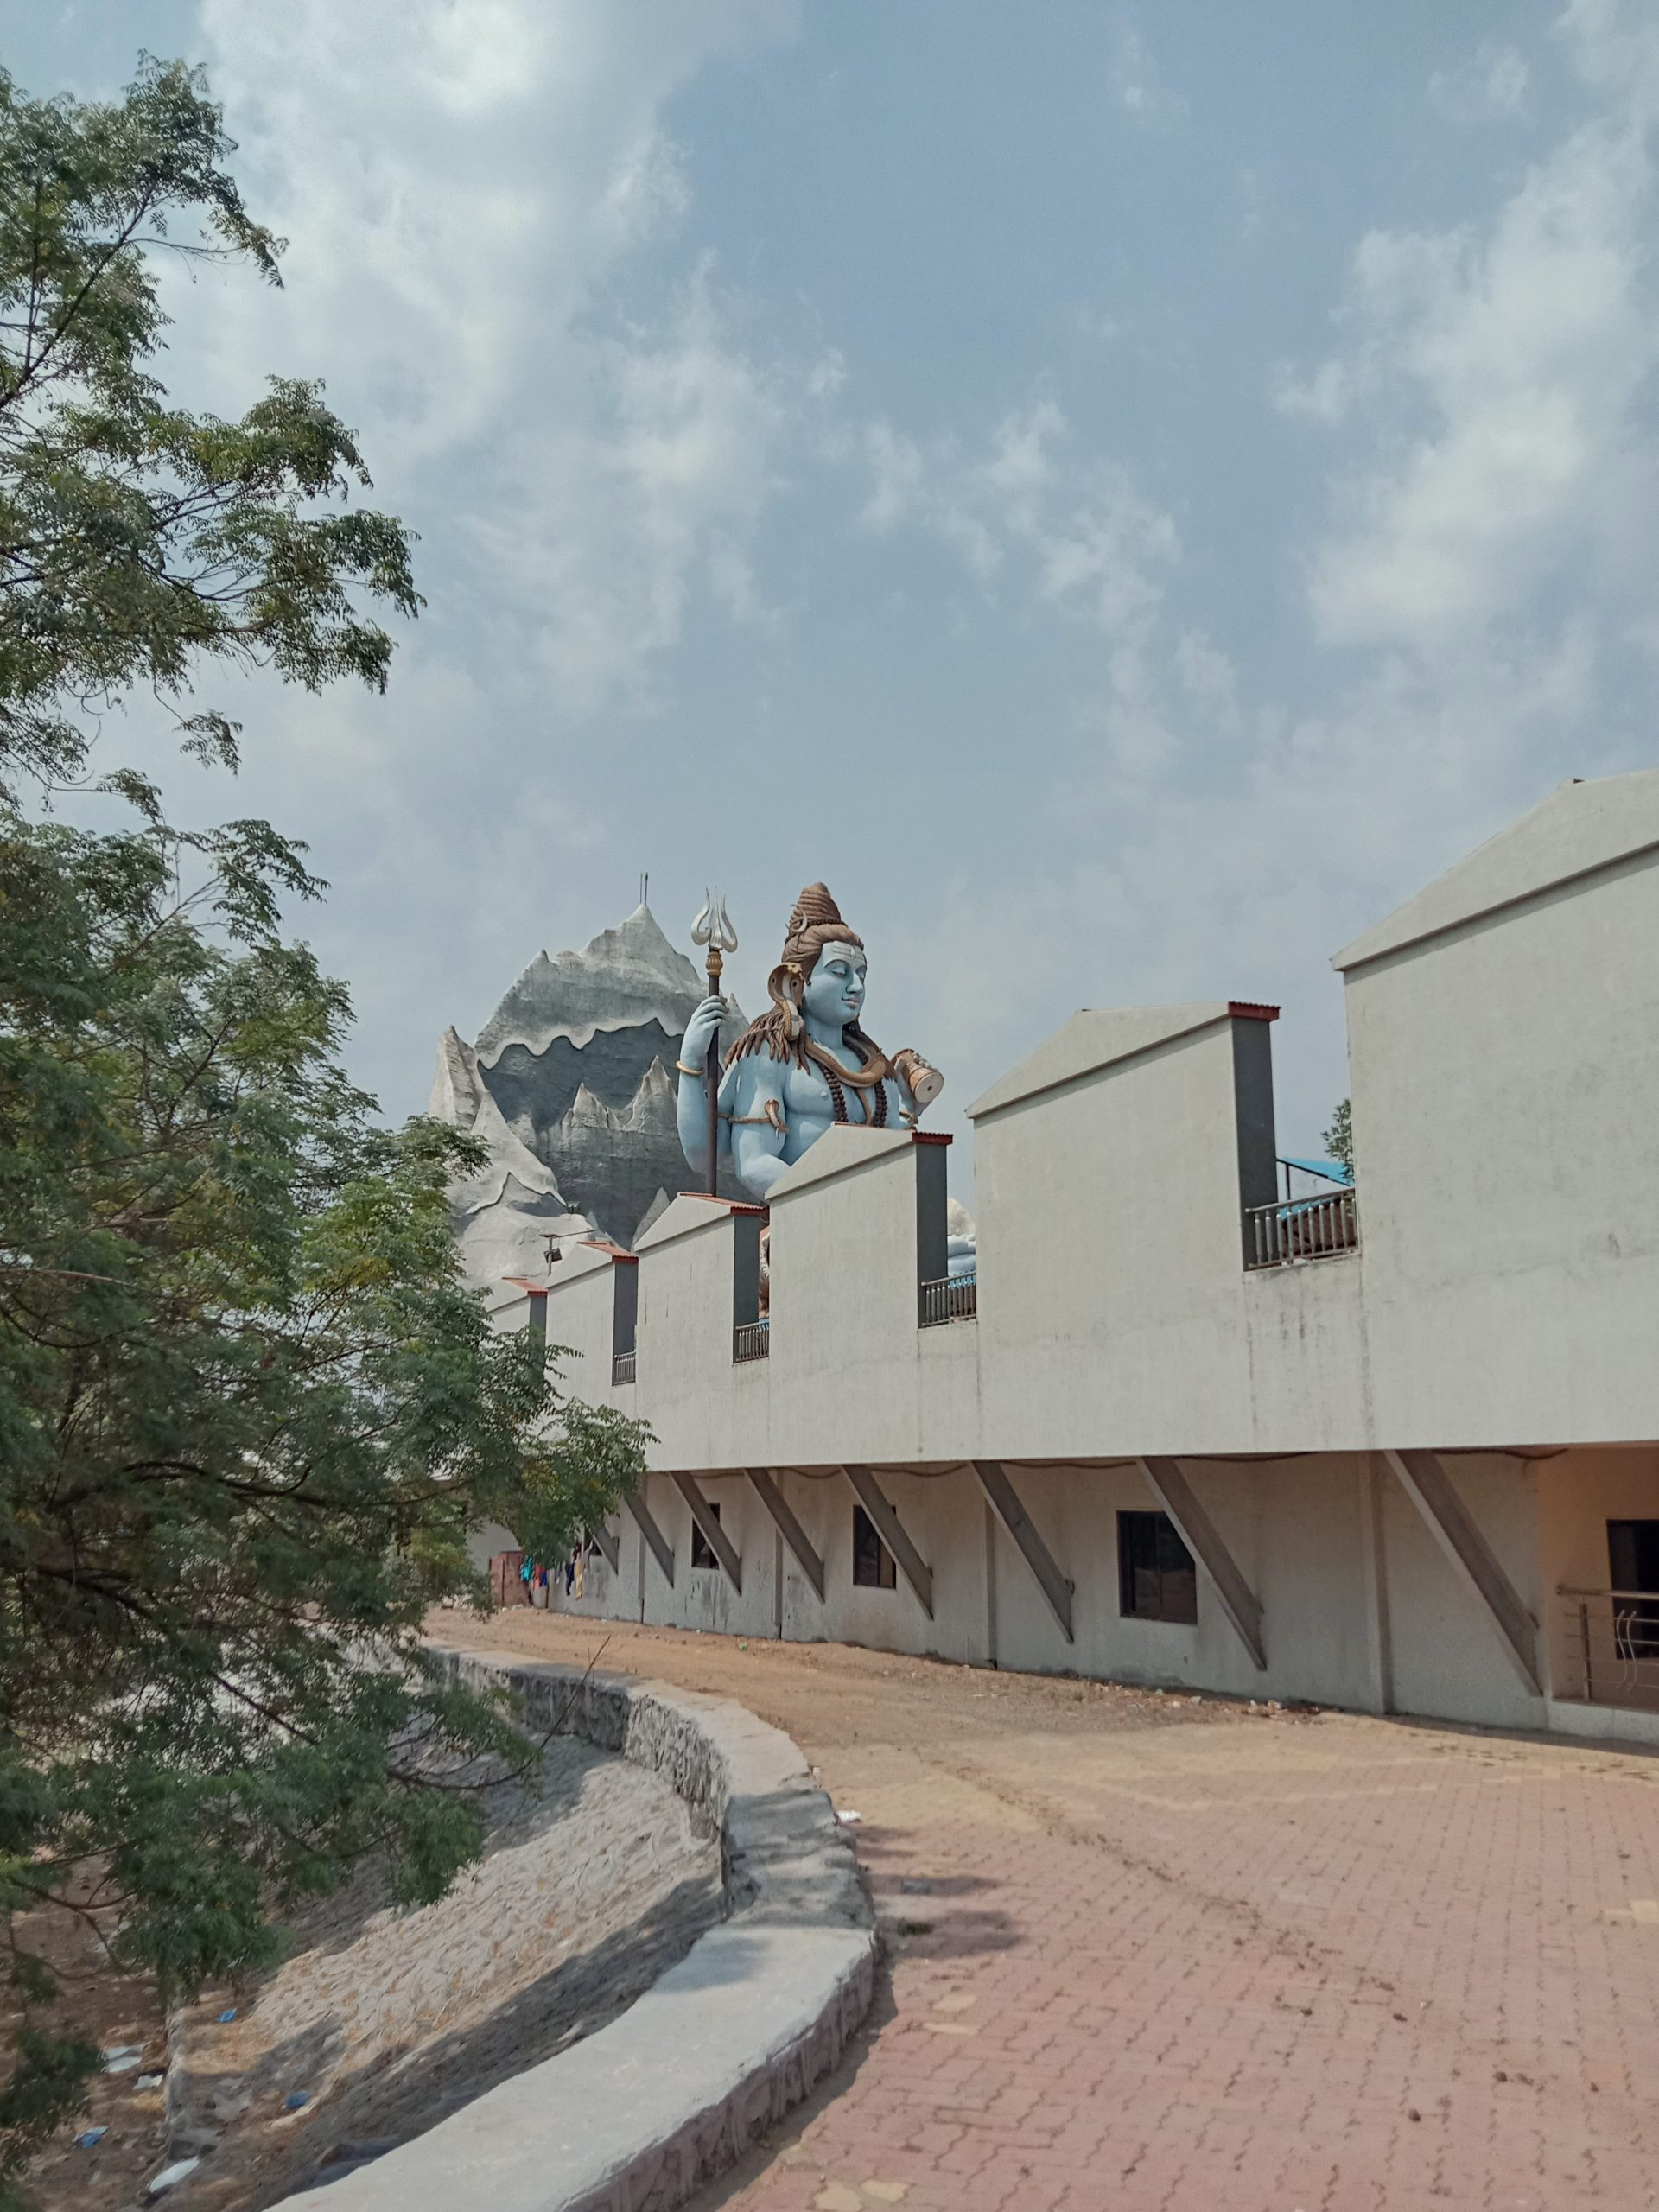 A statue of Lord Shiva